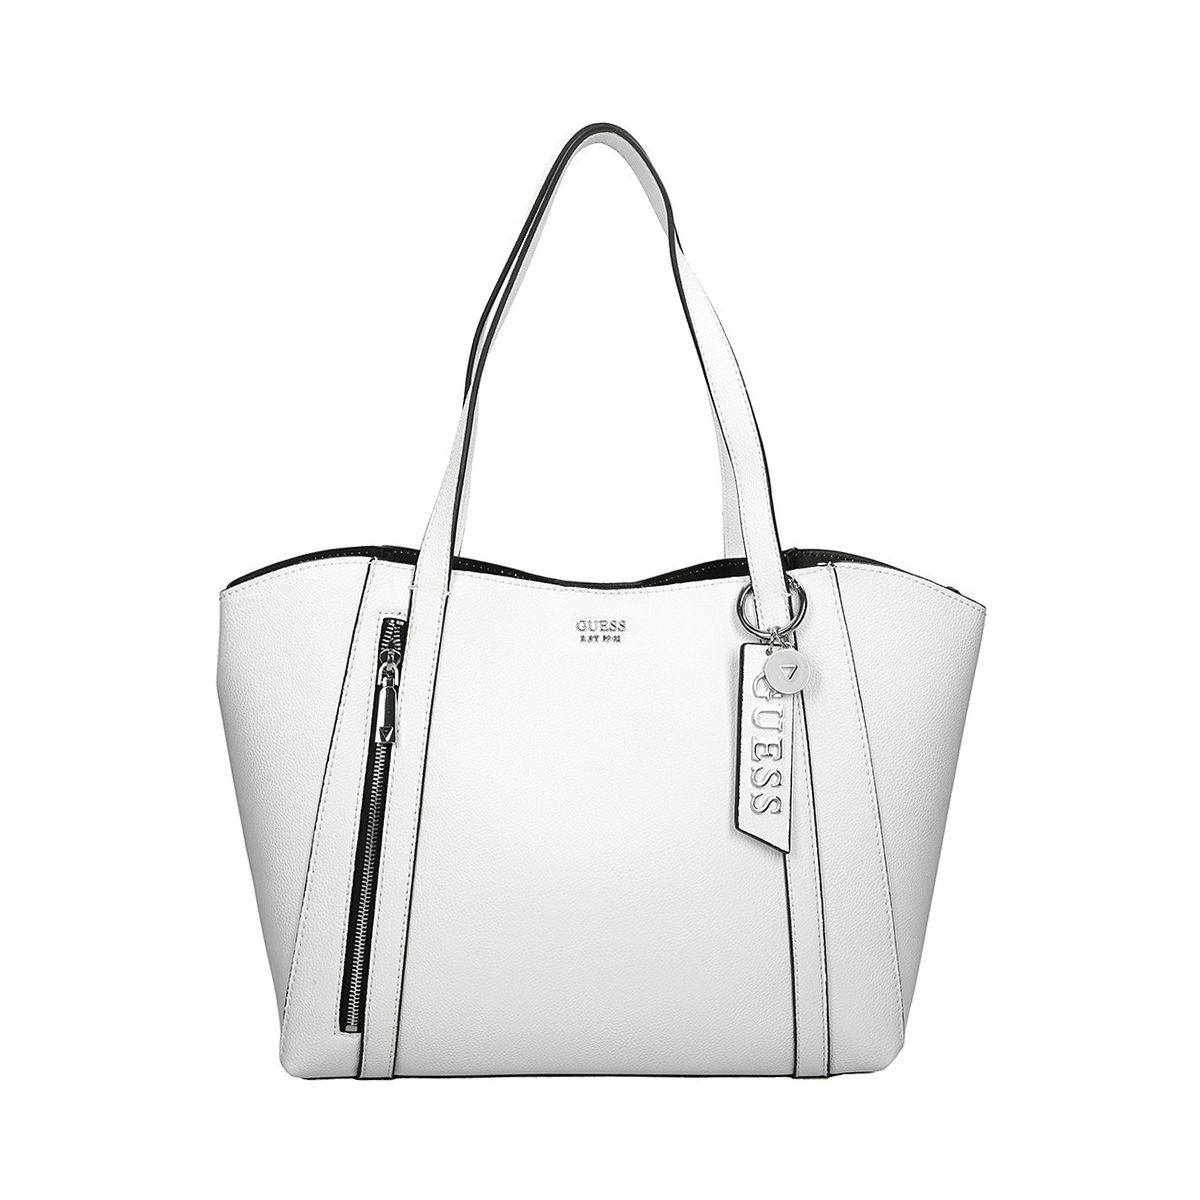 QUESTAR FLOW K NAYA TRAP TOTE:BLANC/SYNTHETIQUE///Blanc